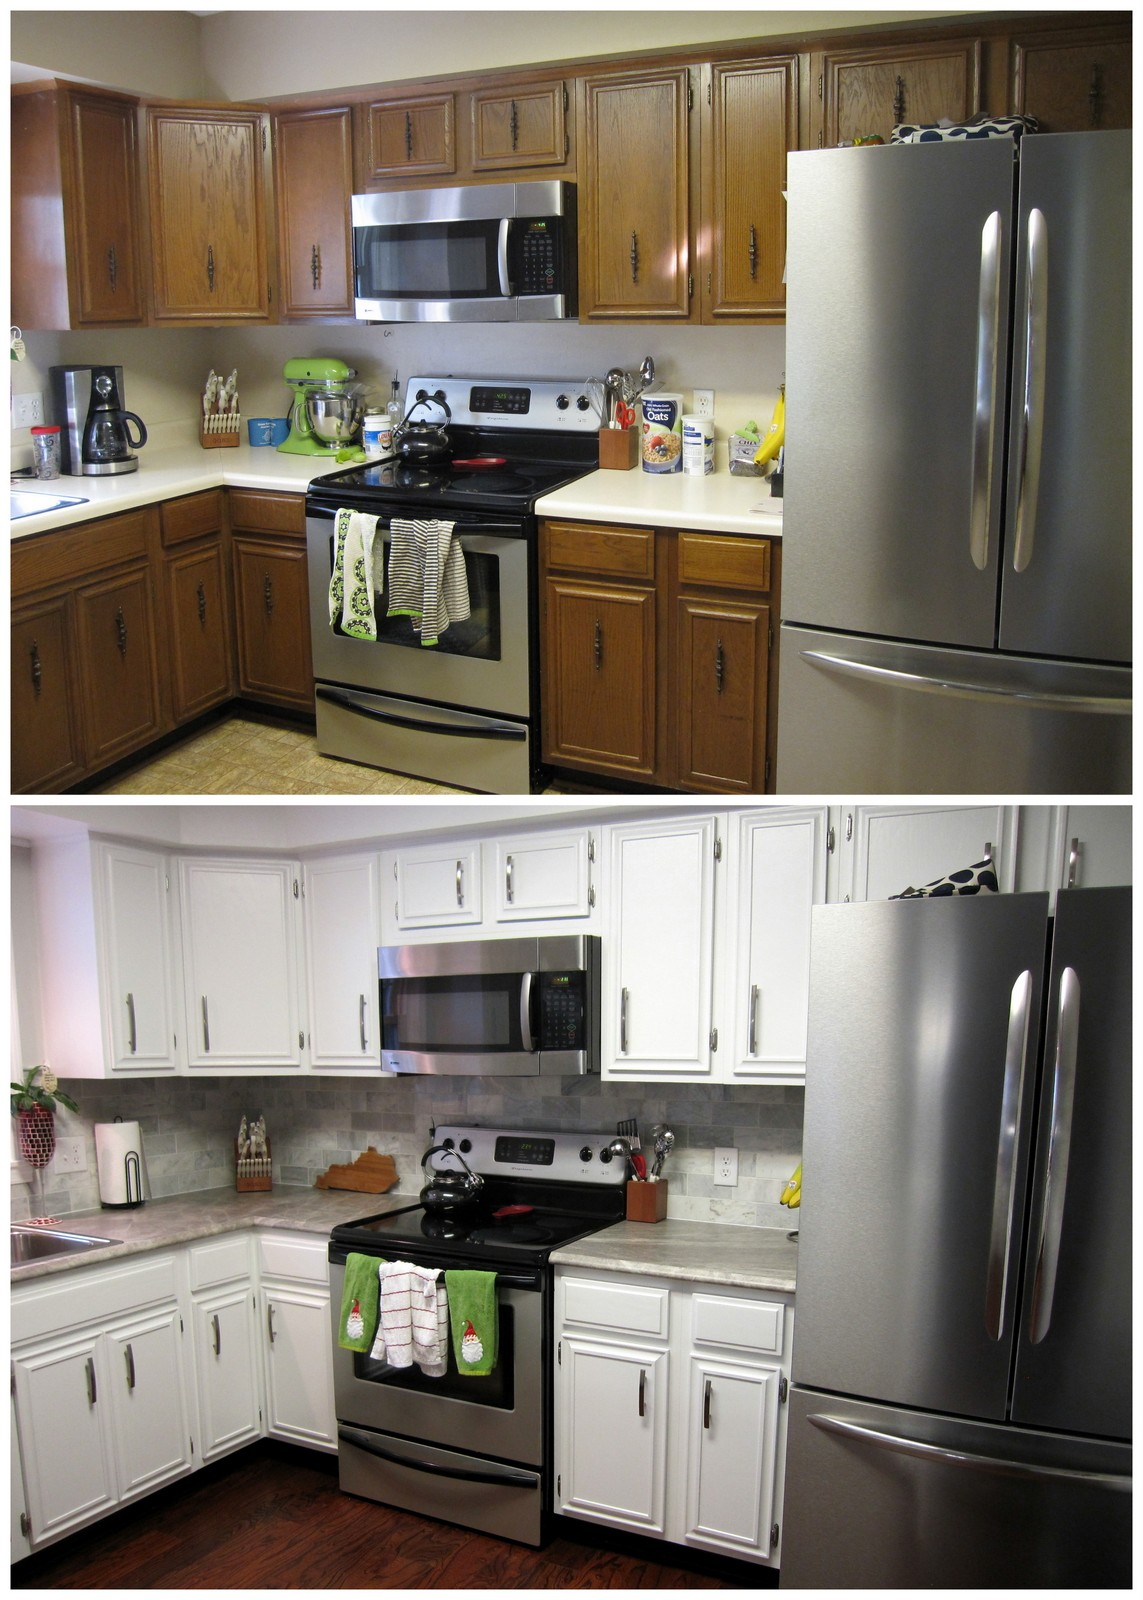 Remodelaholic diy refinished and painted cabinet reviews for I kitchen cabinet